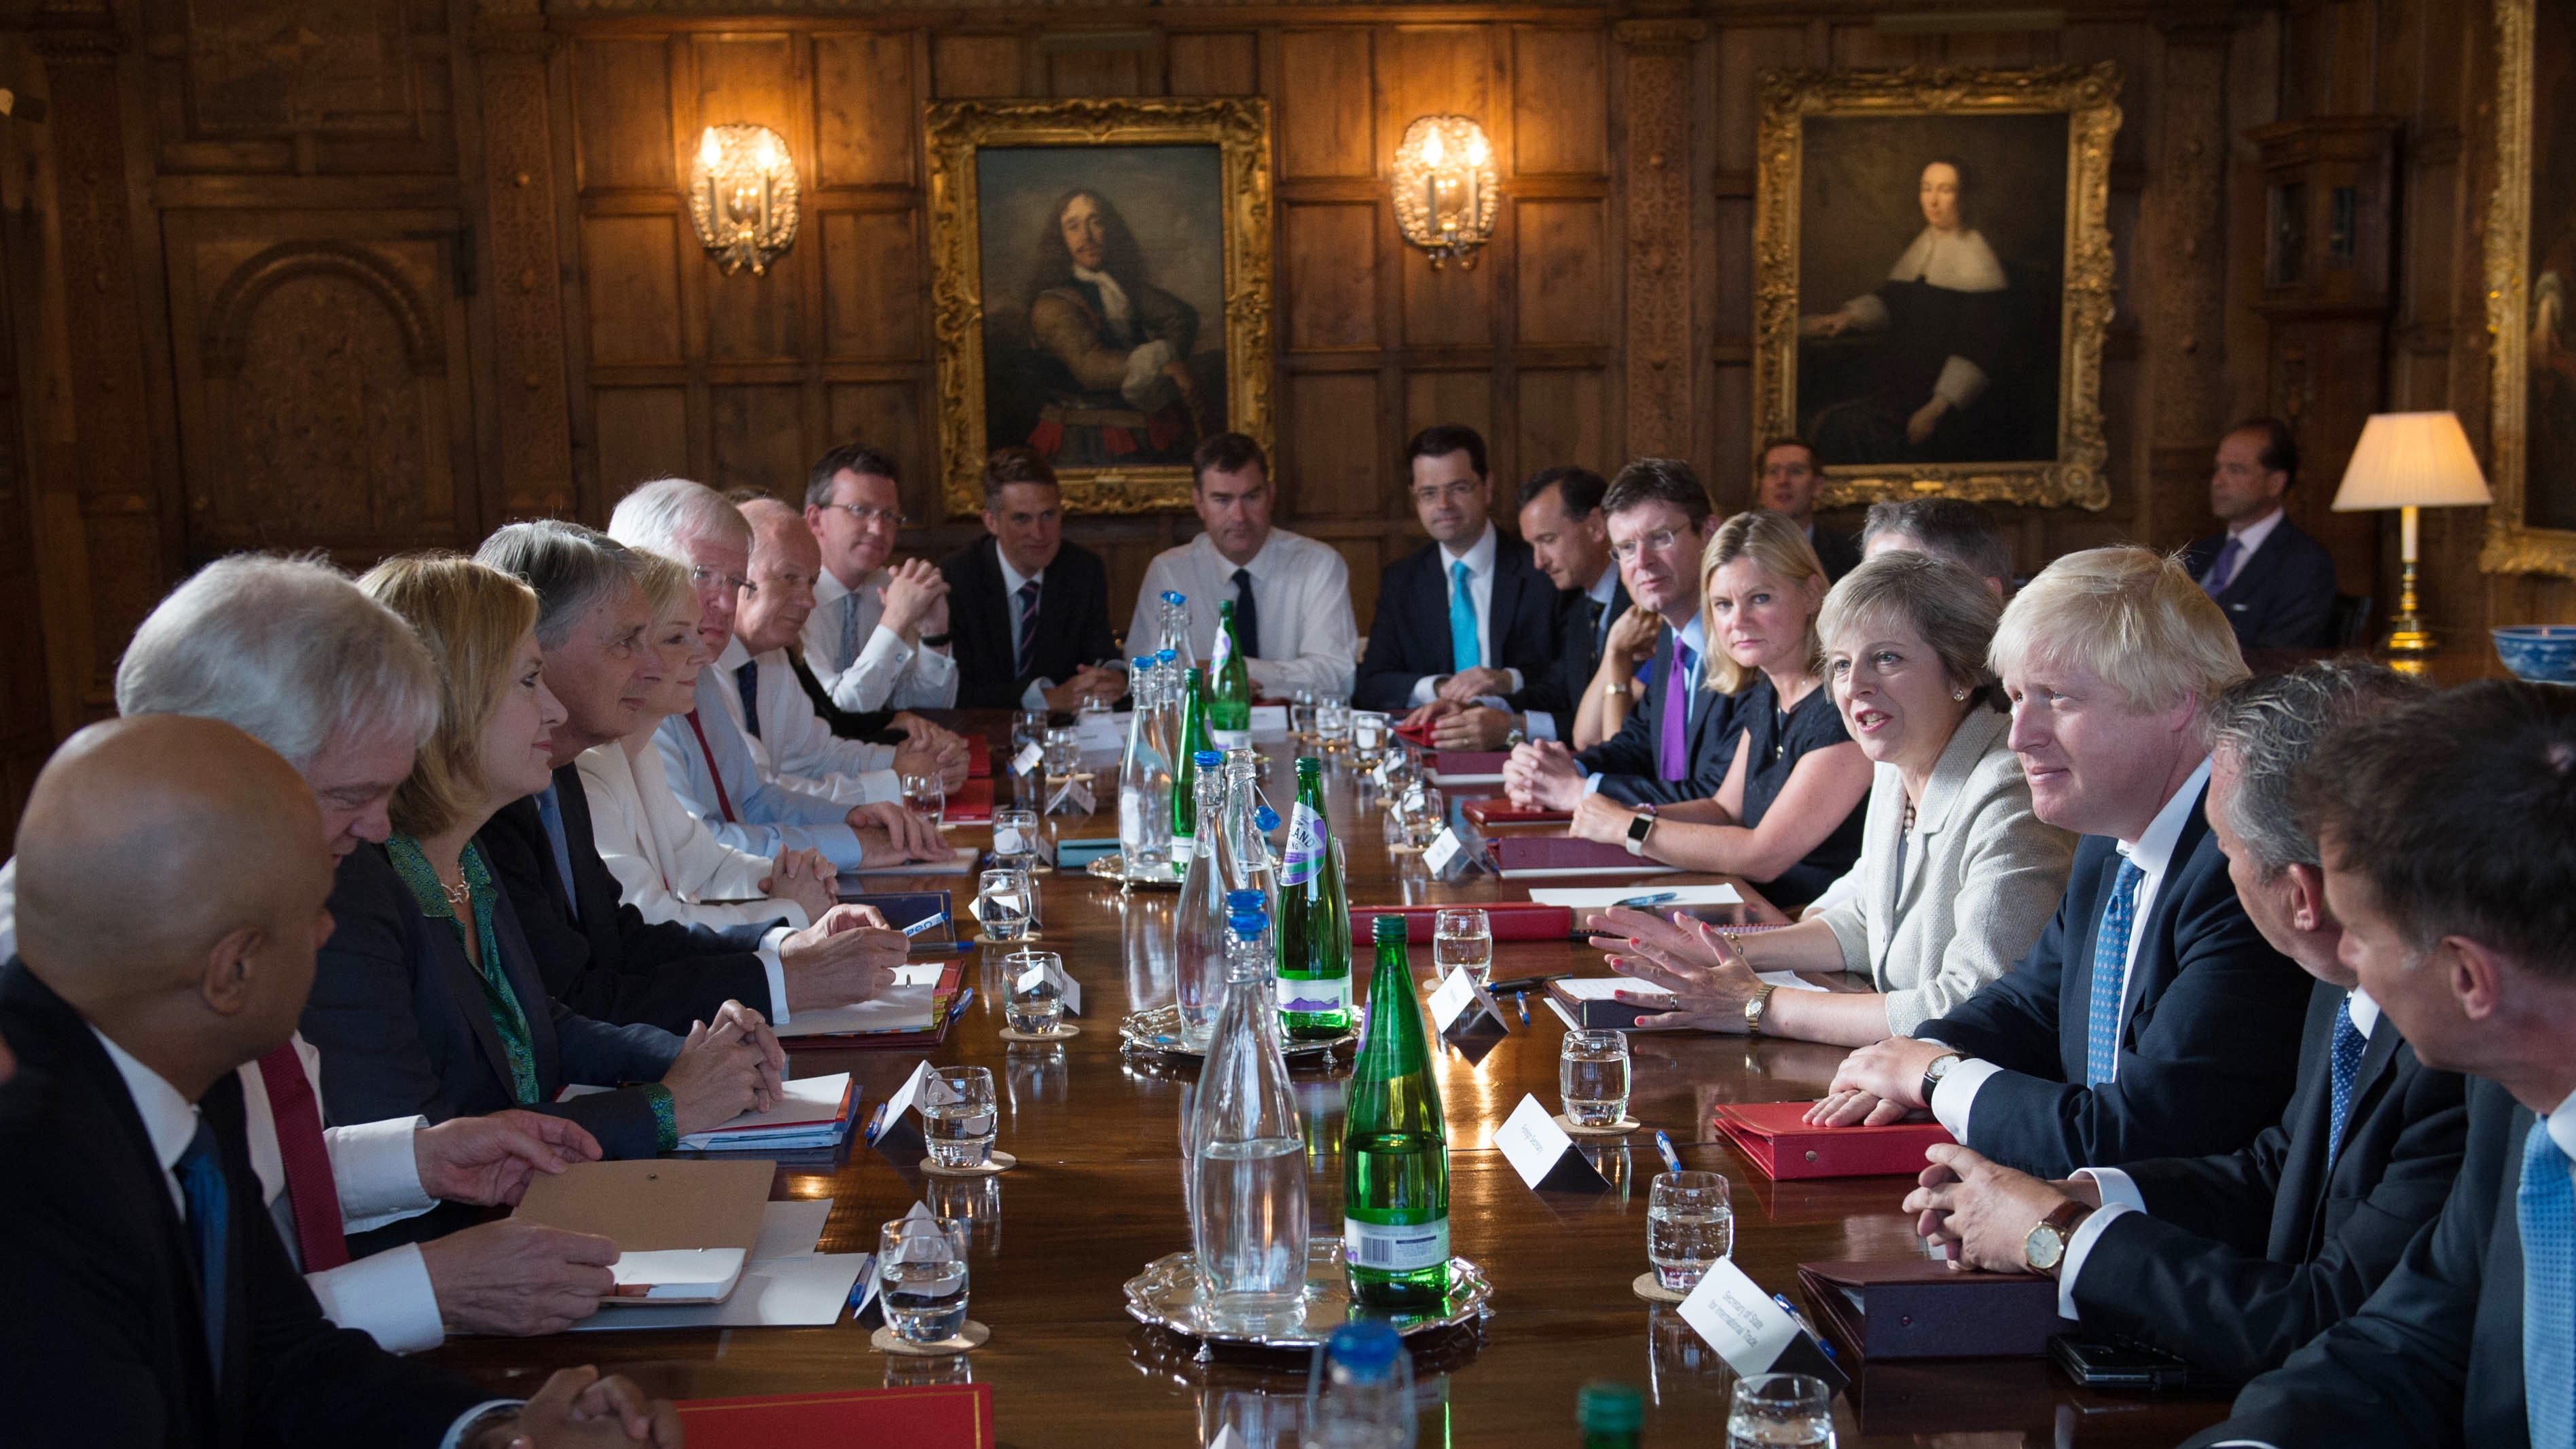 Theresa May Faces Cabinet Showdown Over Brexit At Chequers